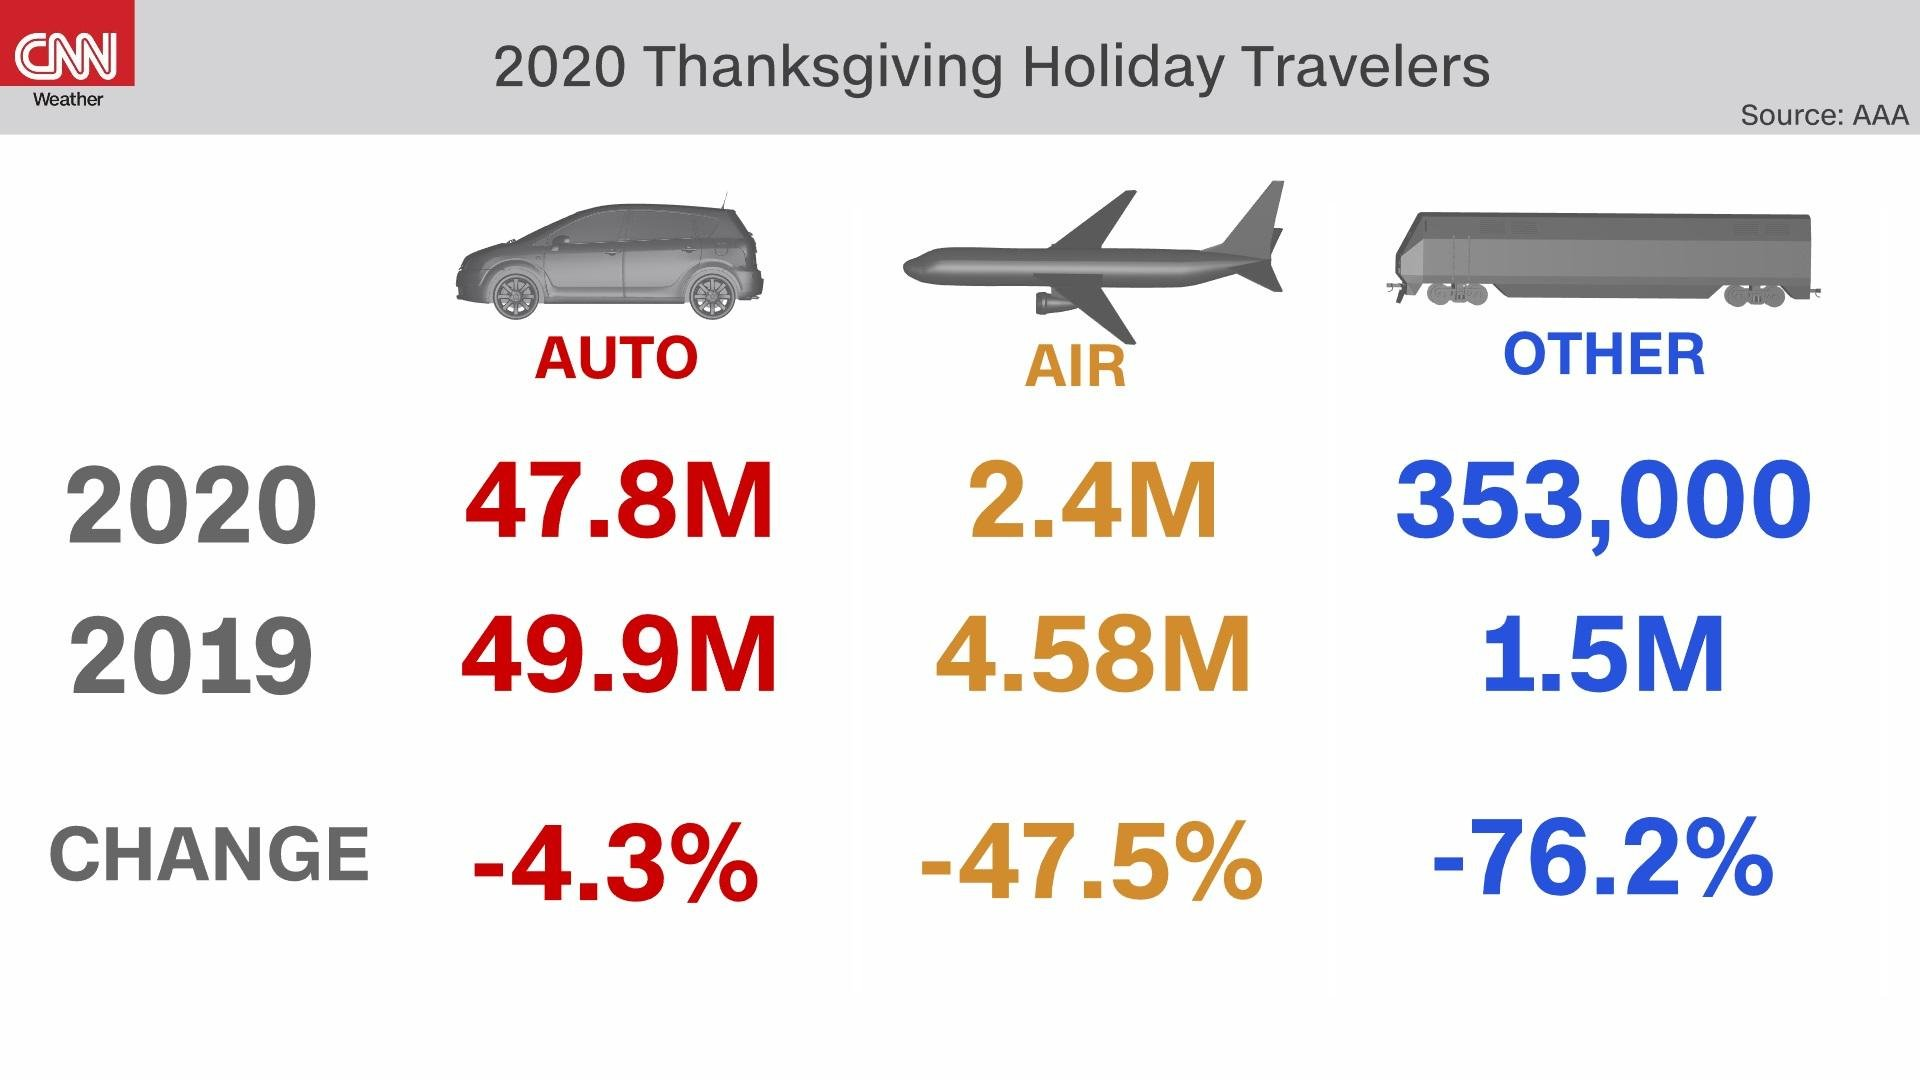 Regardless of the mode of transportation, any travel away from your home this year is risky. (Credit: CNN Weather)